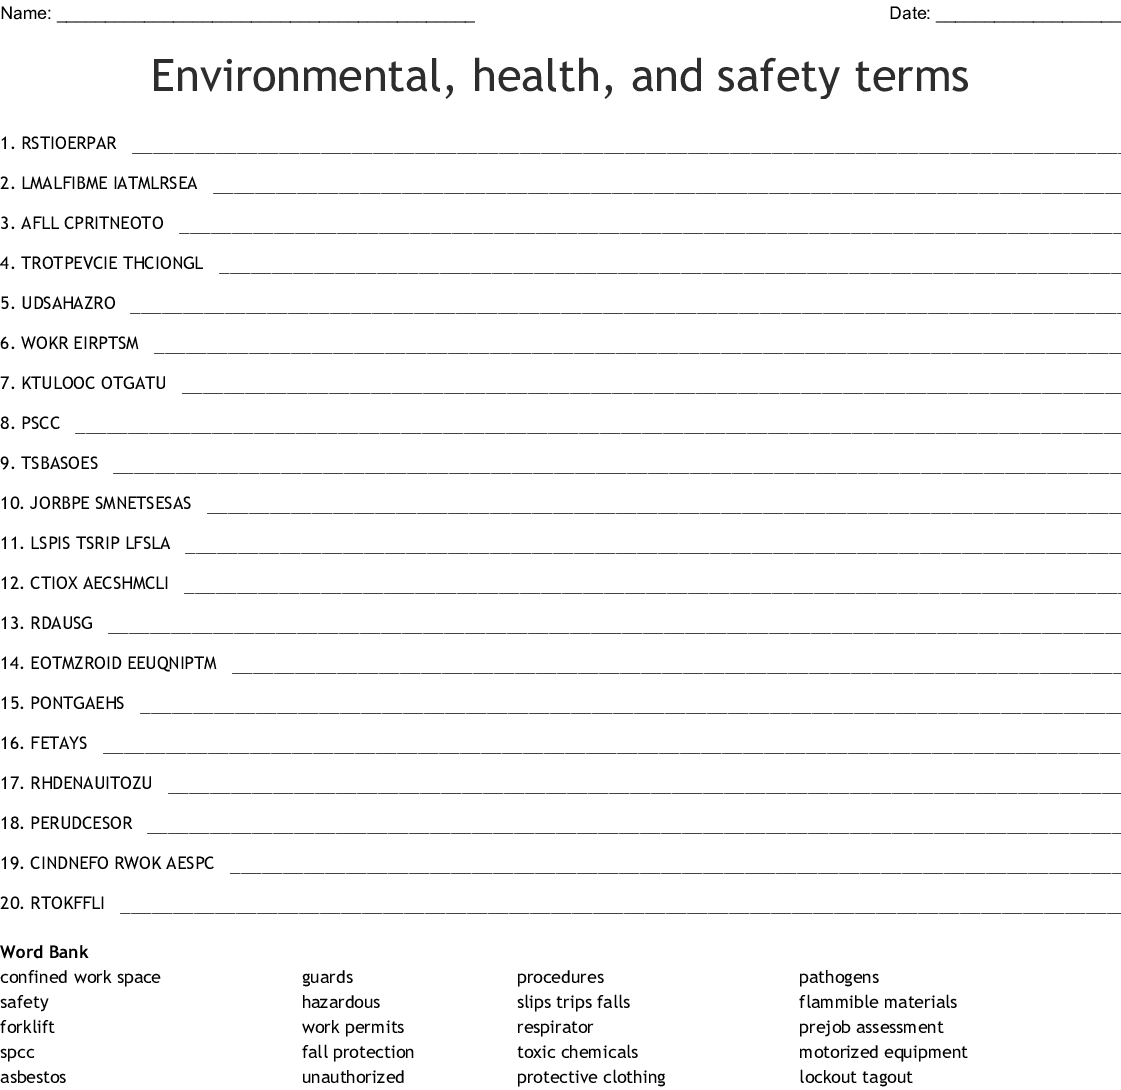 Environmental Health And Safety Terms Word Scramble